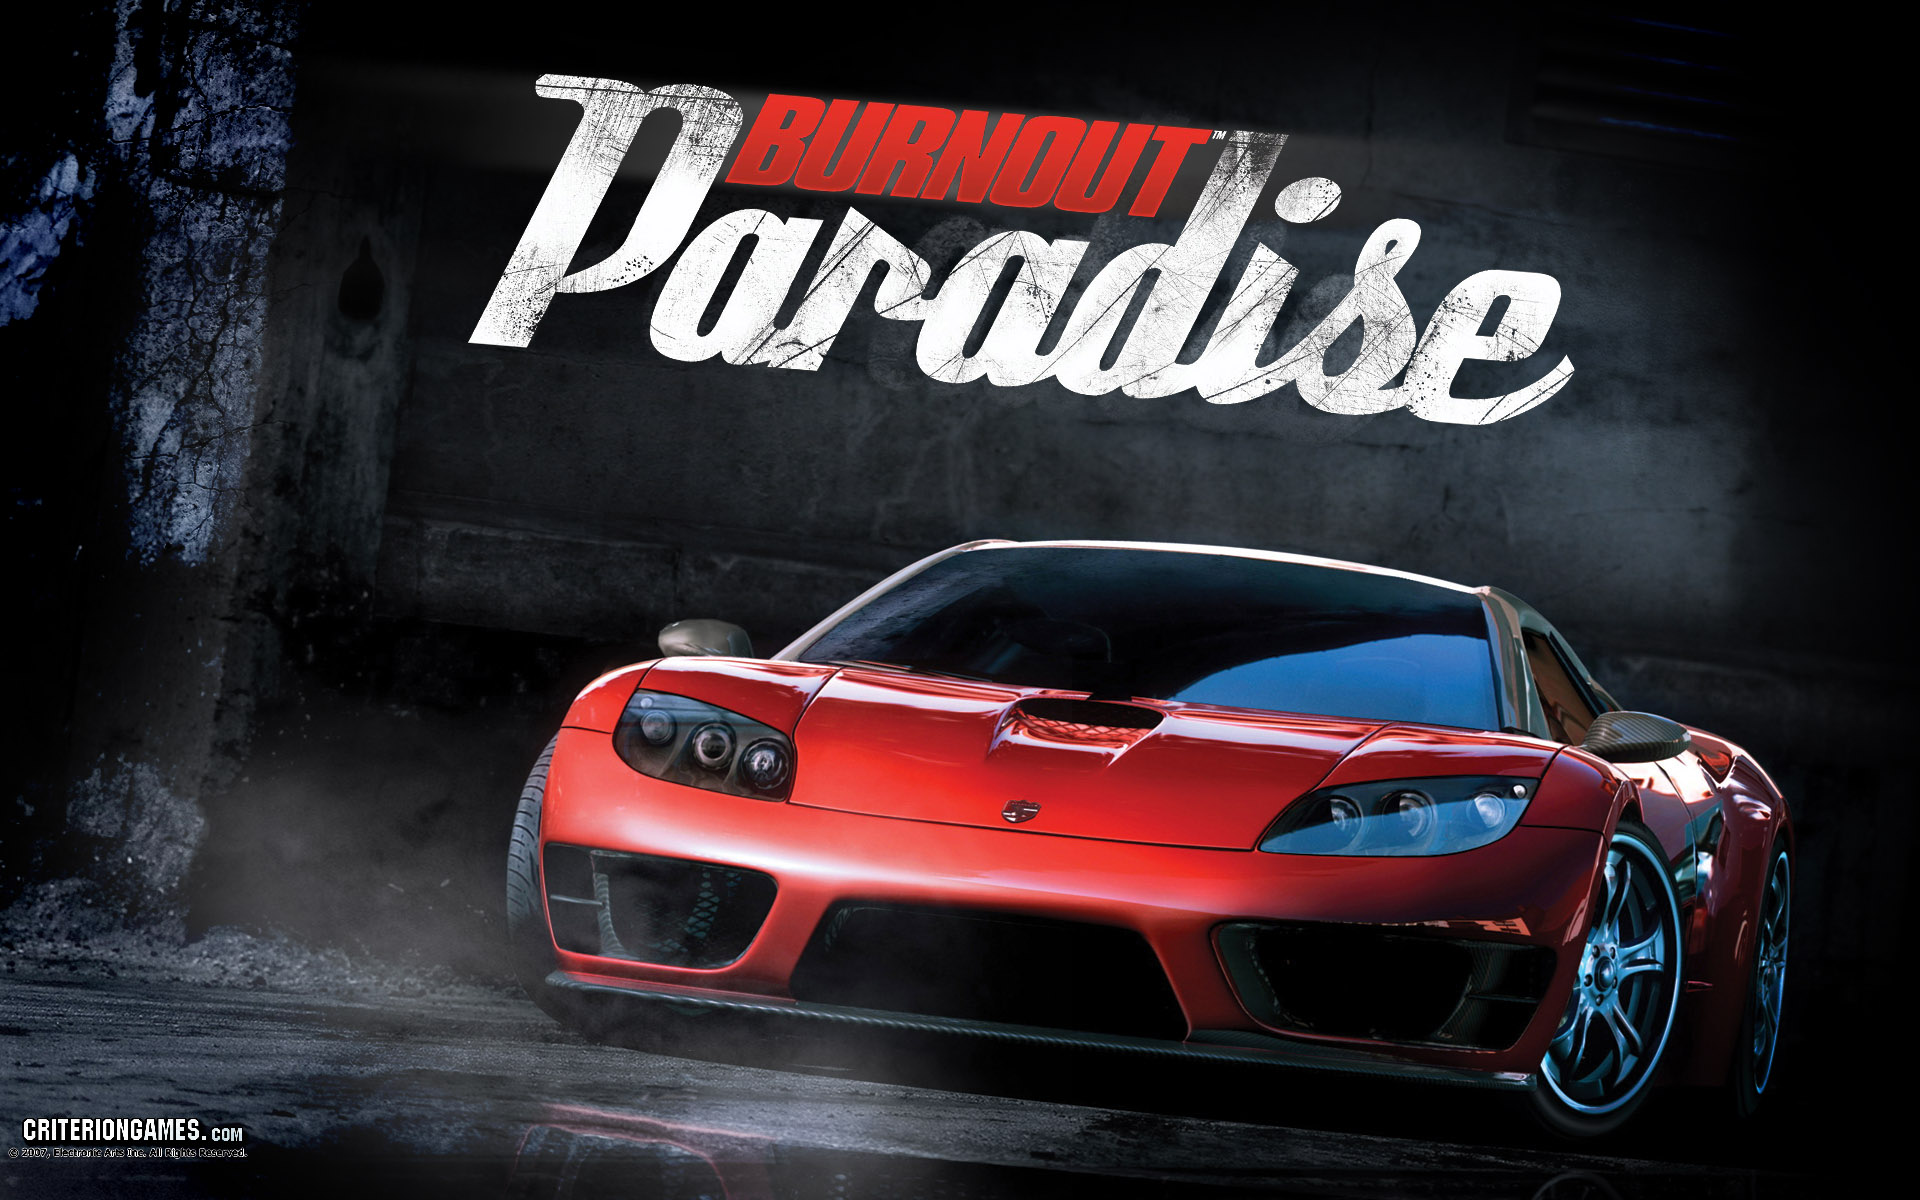 Racing Car Hd Wallpaper Free Download Burnout Paradise Xbox One Backwards Compatibility Could Be